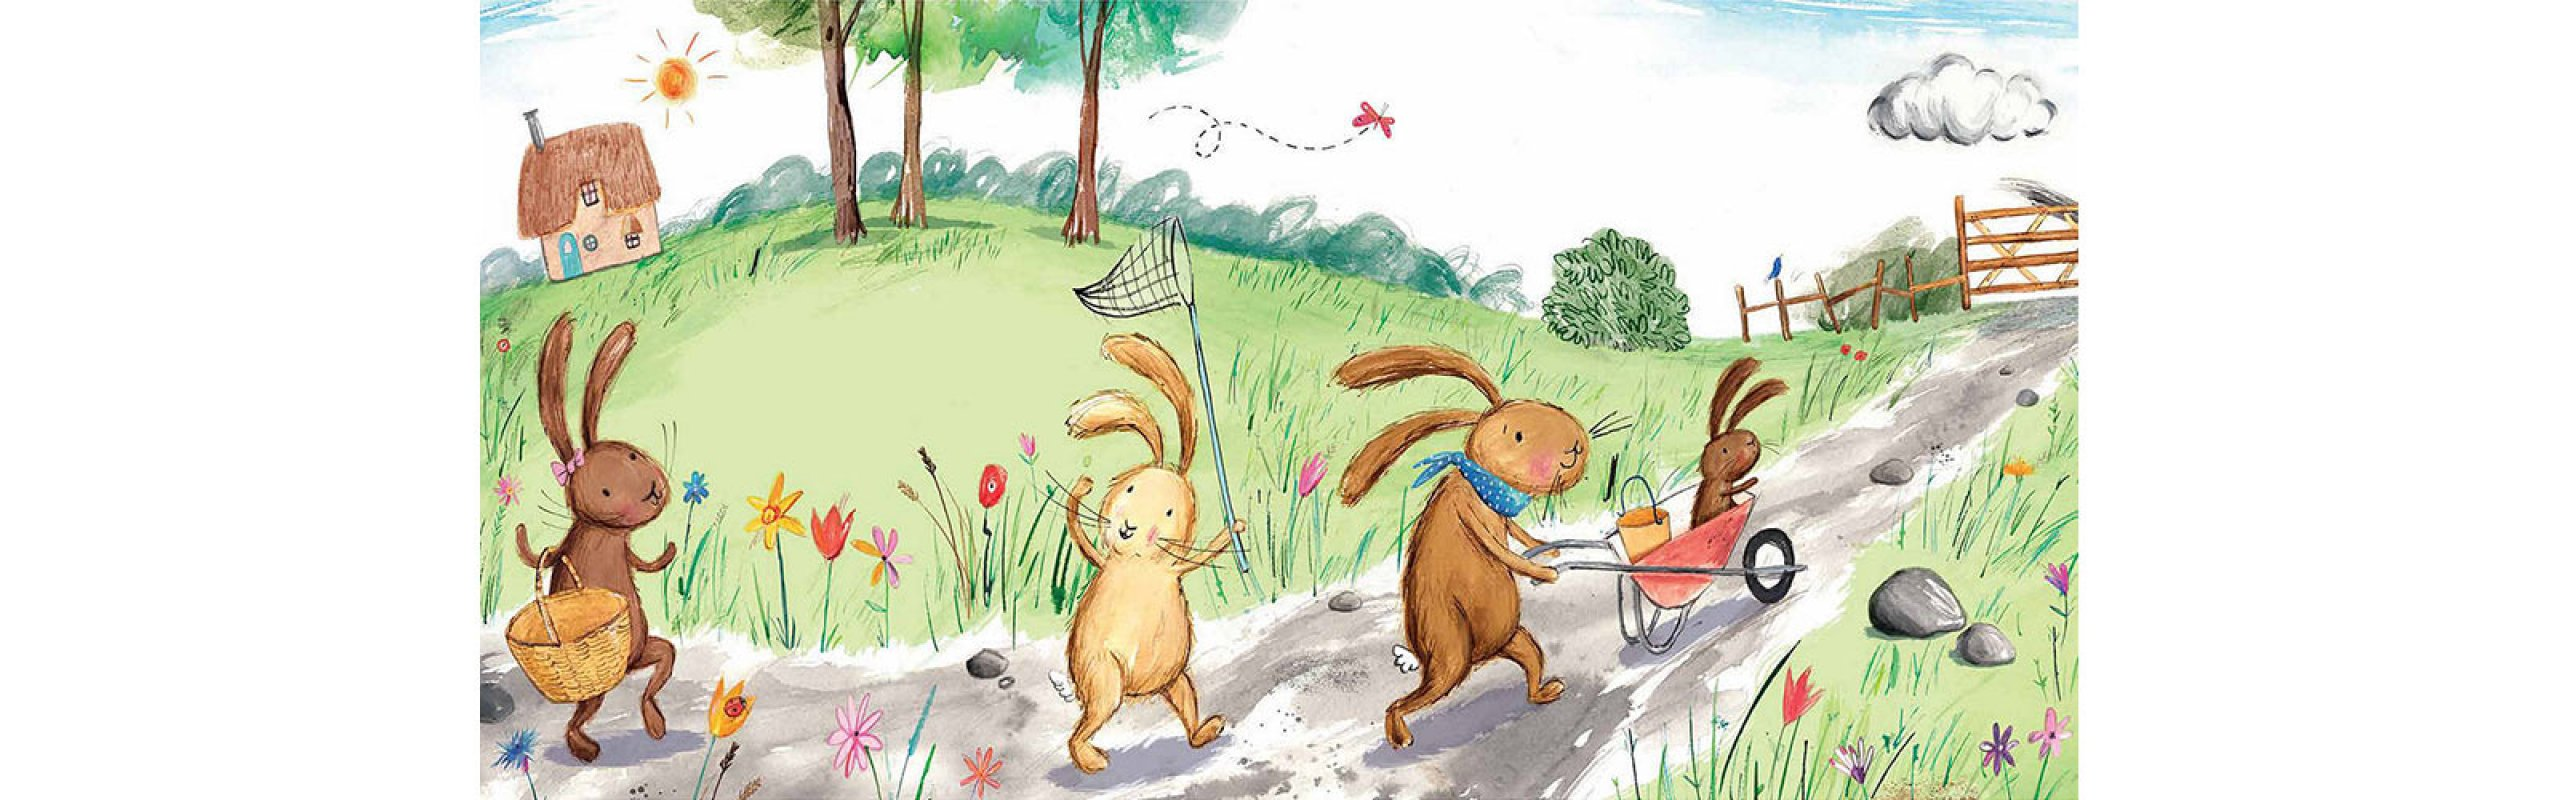 A SPECIAL EASTER STORYTIME! We are Going on an Egg Hunt. Illustrated by Laura Hughes